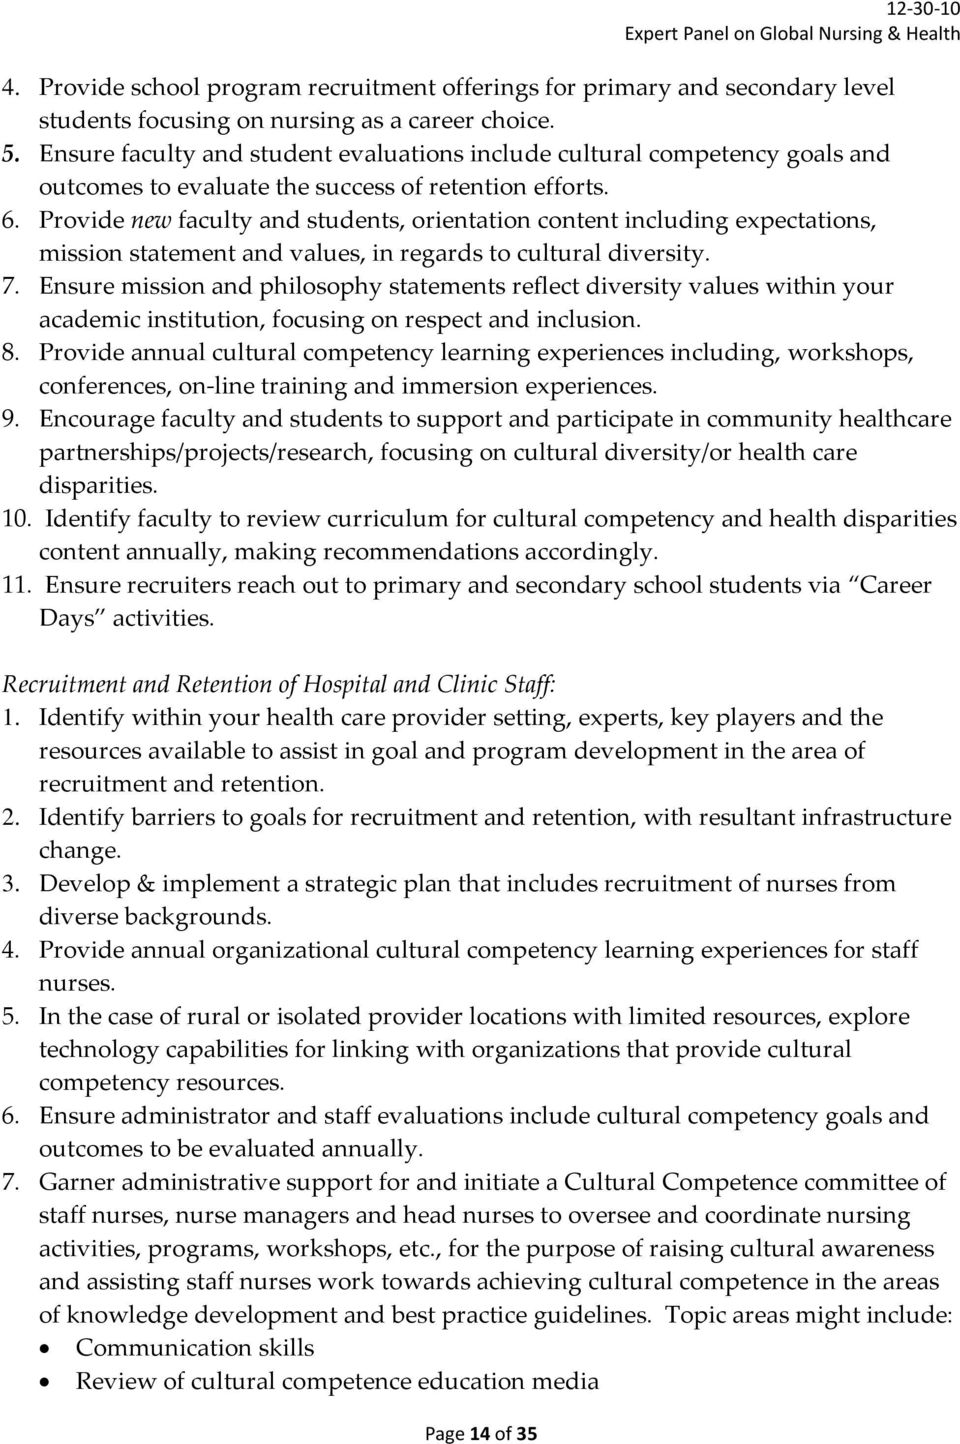 Provide new faculty and students, orientation content including expectations, mission statement and values, in regards to cultural diversity. 7.